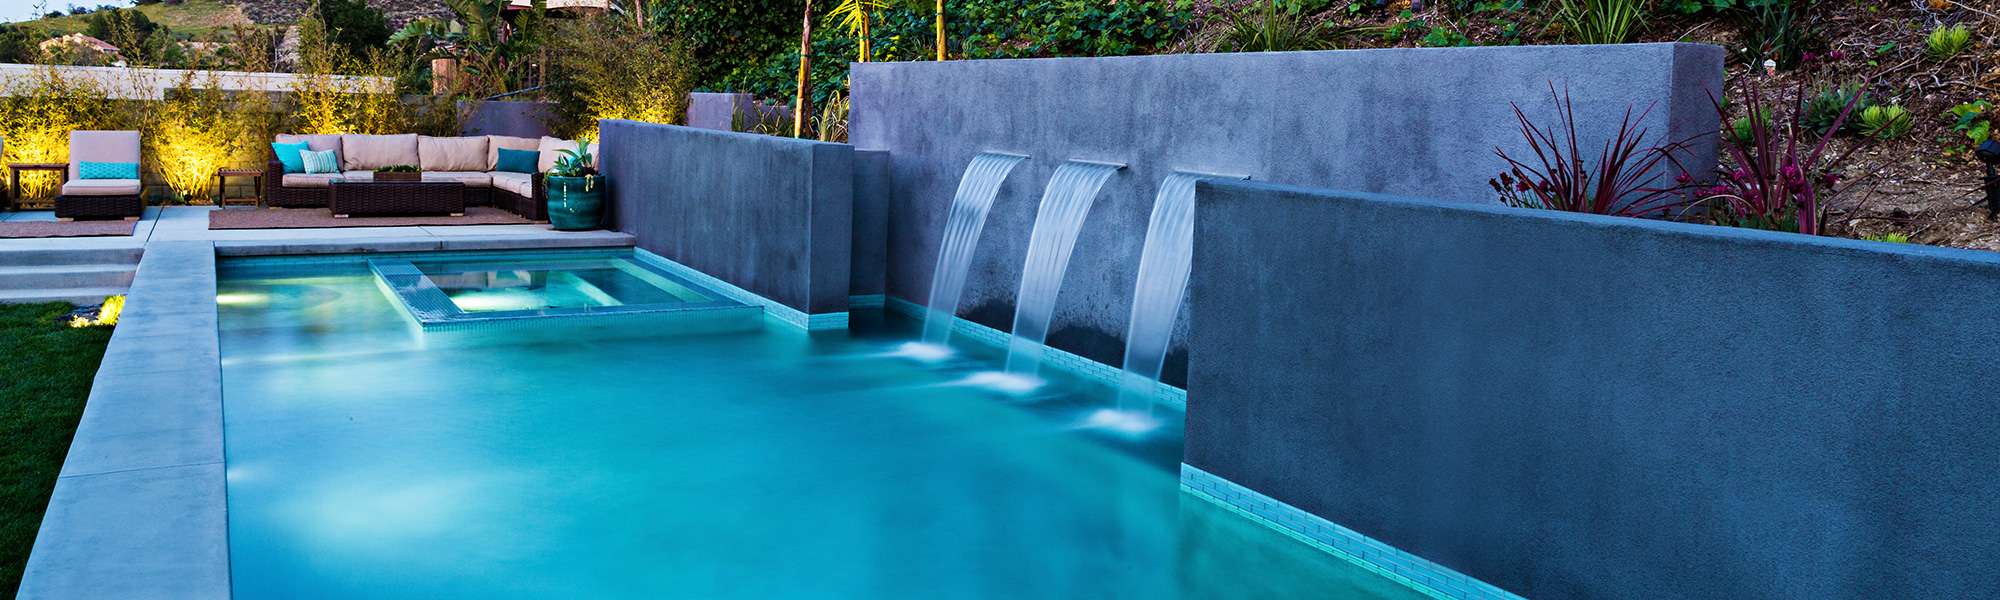 Los Angeles Pool Builder | Los Angeles Pool Builder